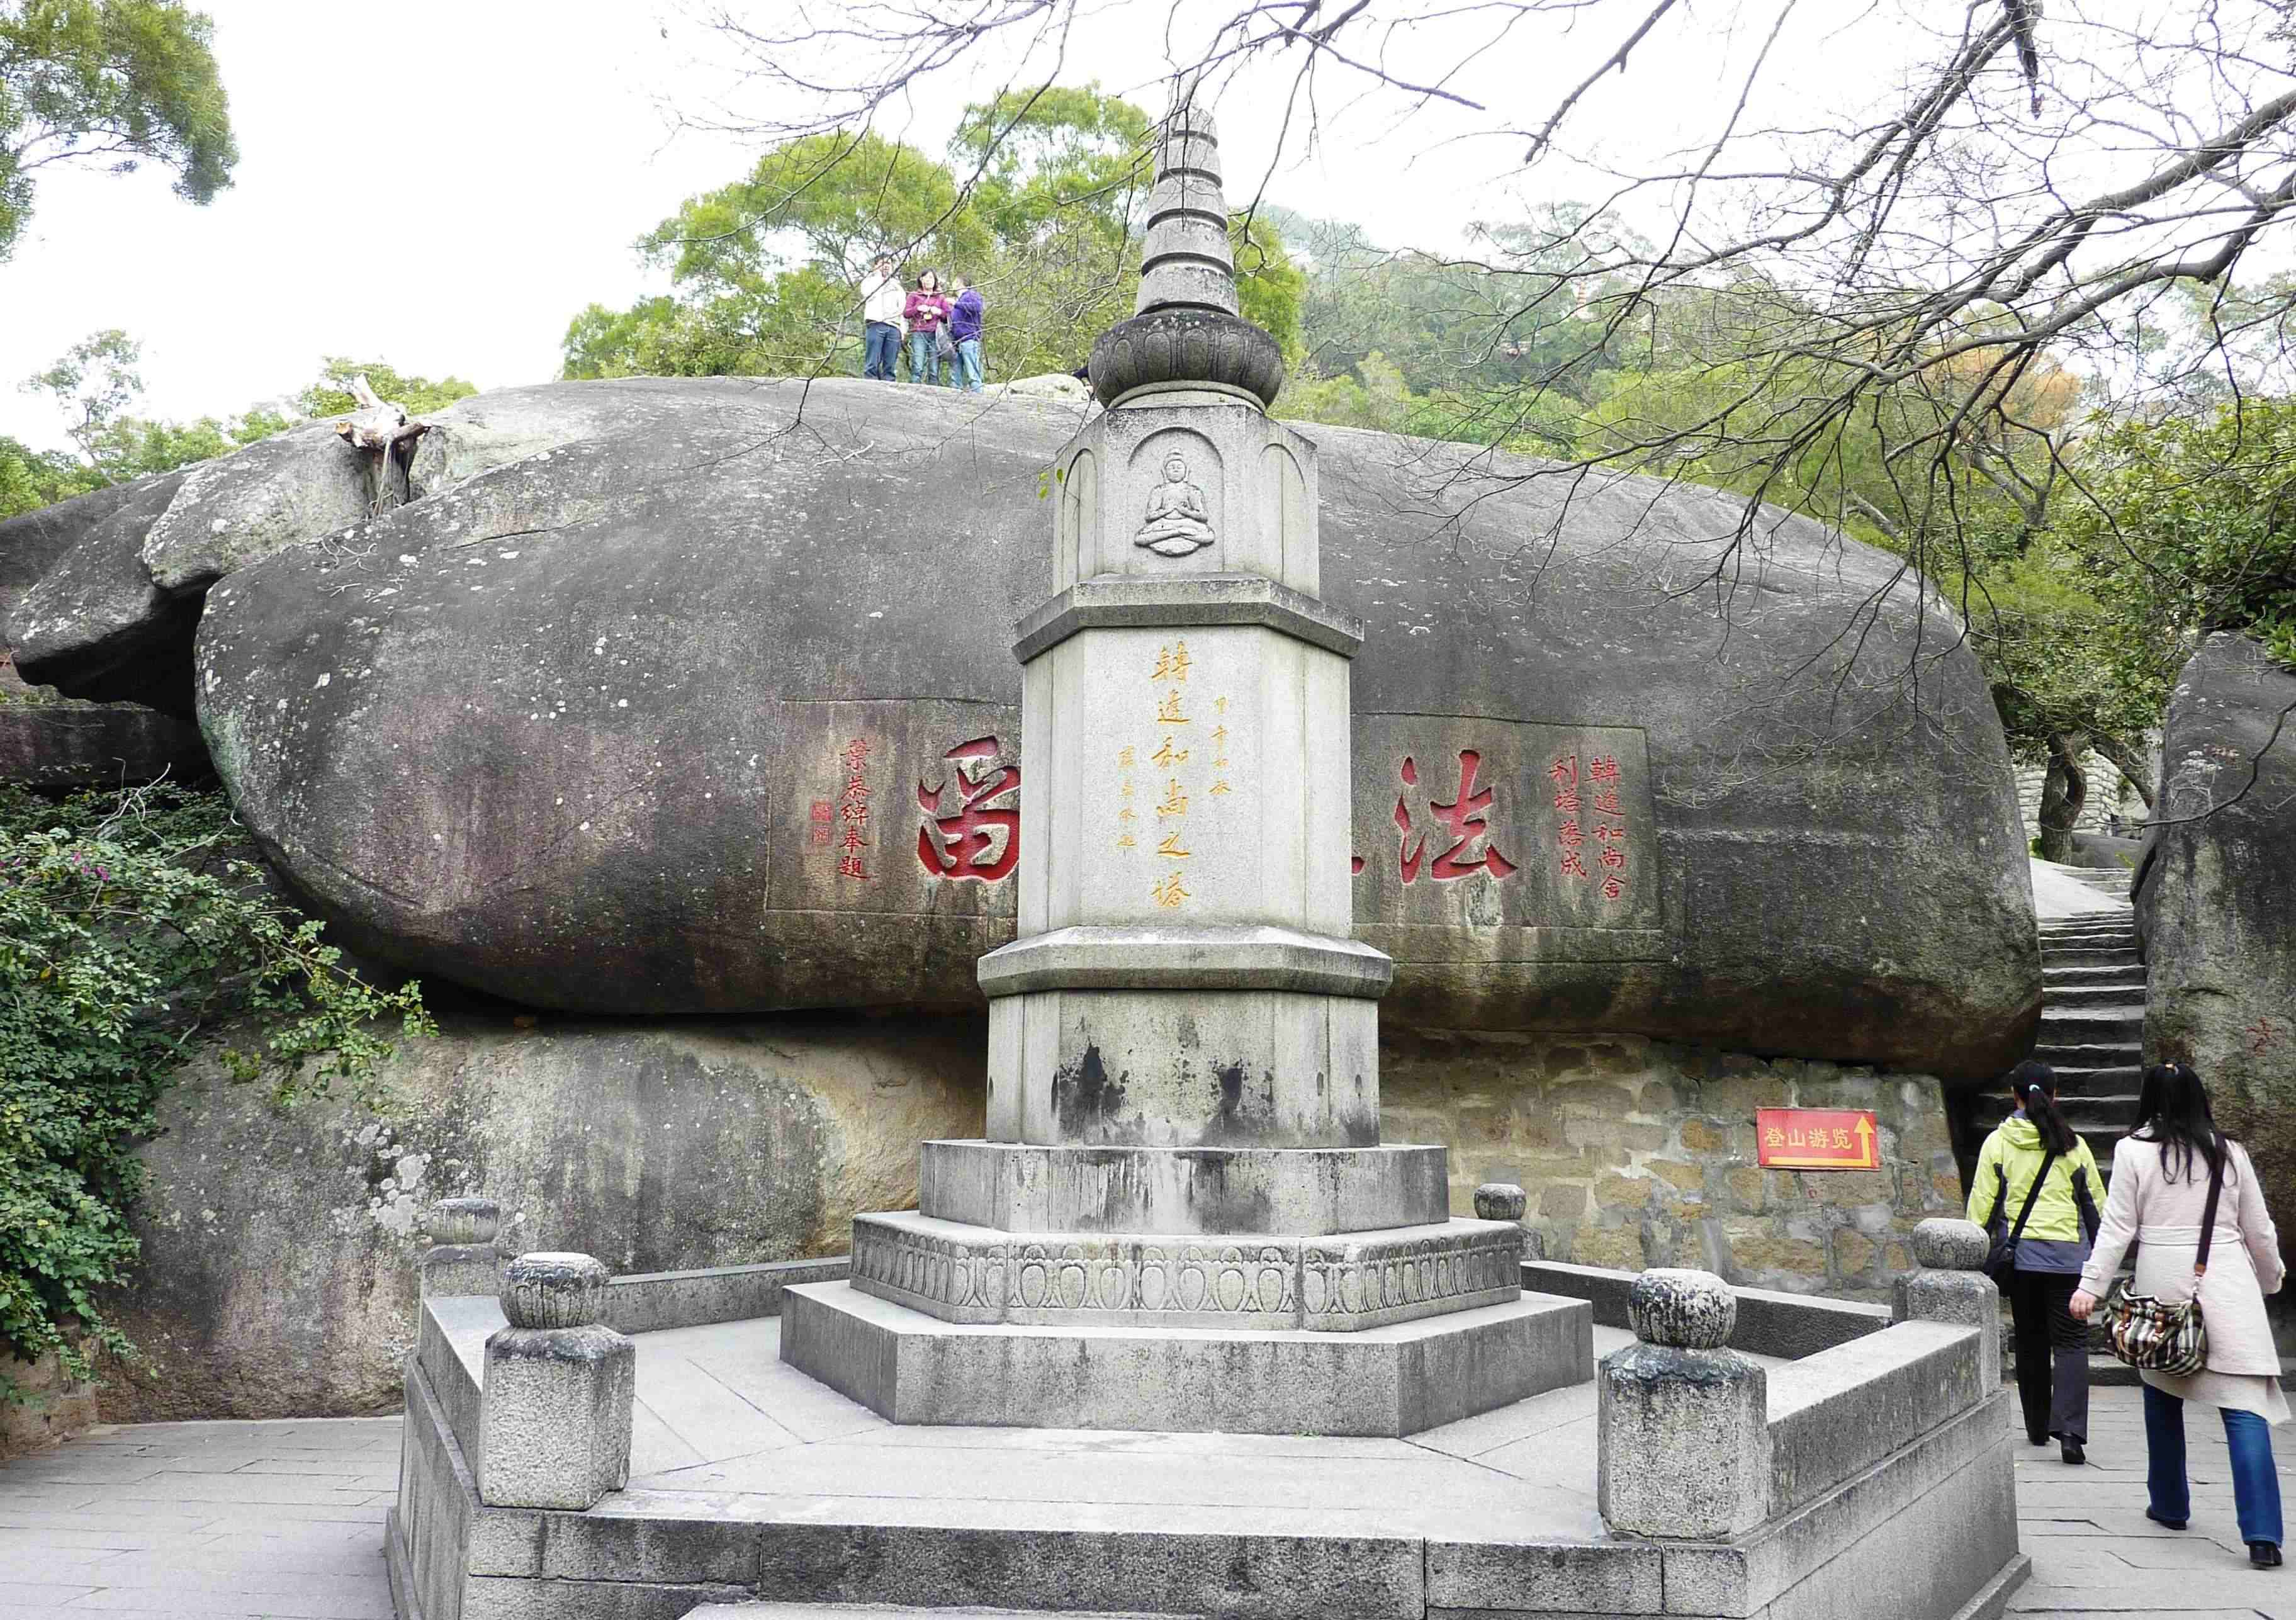 This is Buddhist Style of Tomb. This is Indian Style... However, you can find many Indian influence in China... Chinese is very open to foreign cultures, As long as the culture is benefitting, Chinese normally absorbs them into their own. 这是佛教坟墓传统,是印度传统而非中华自有.然而,你可以在中华大地看到诸多此类的塔。中华文化是包容性特强的文明,吸收许多外来的养分壮大自己的内涵。